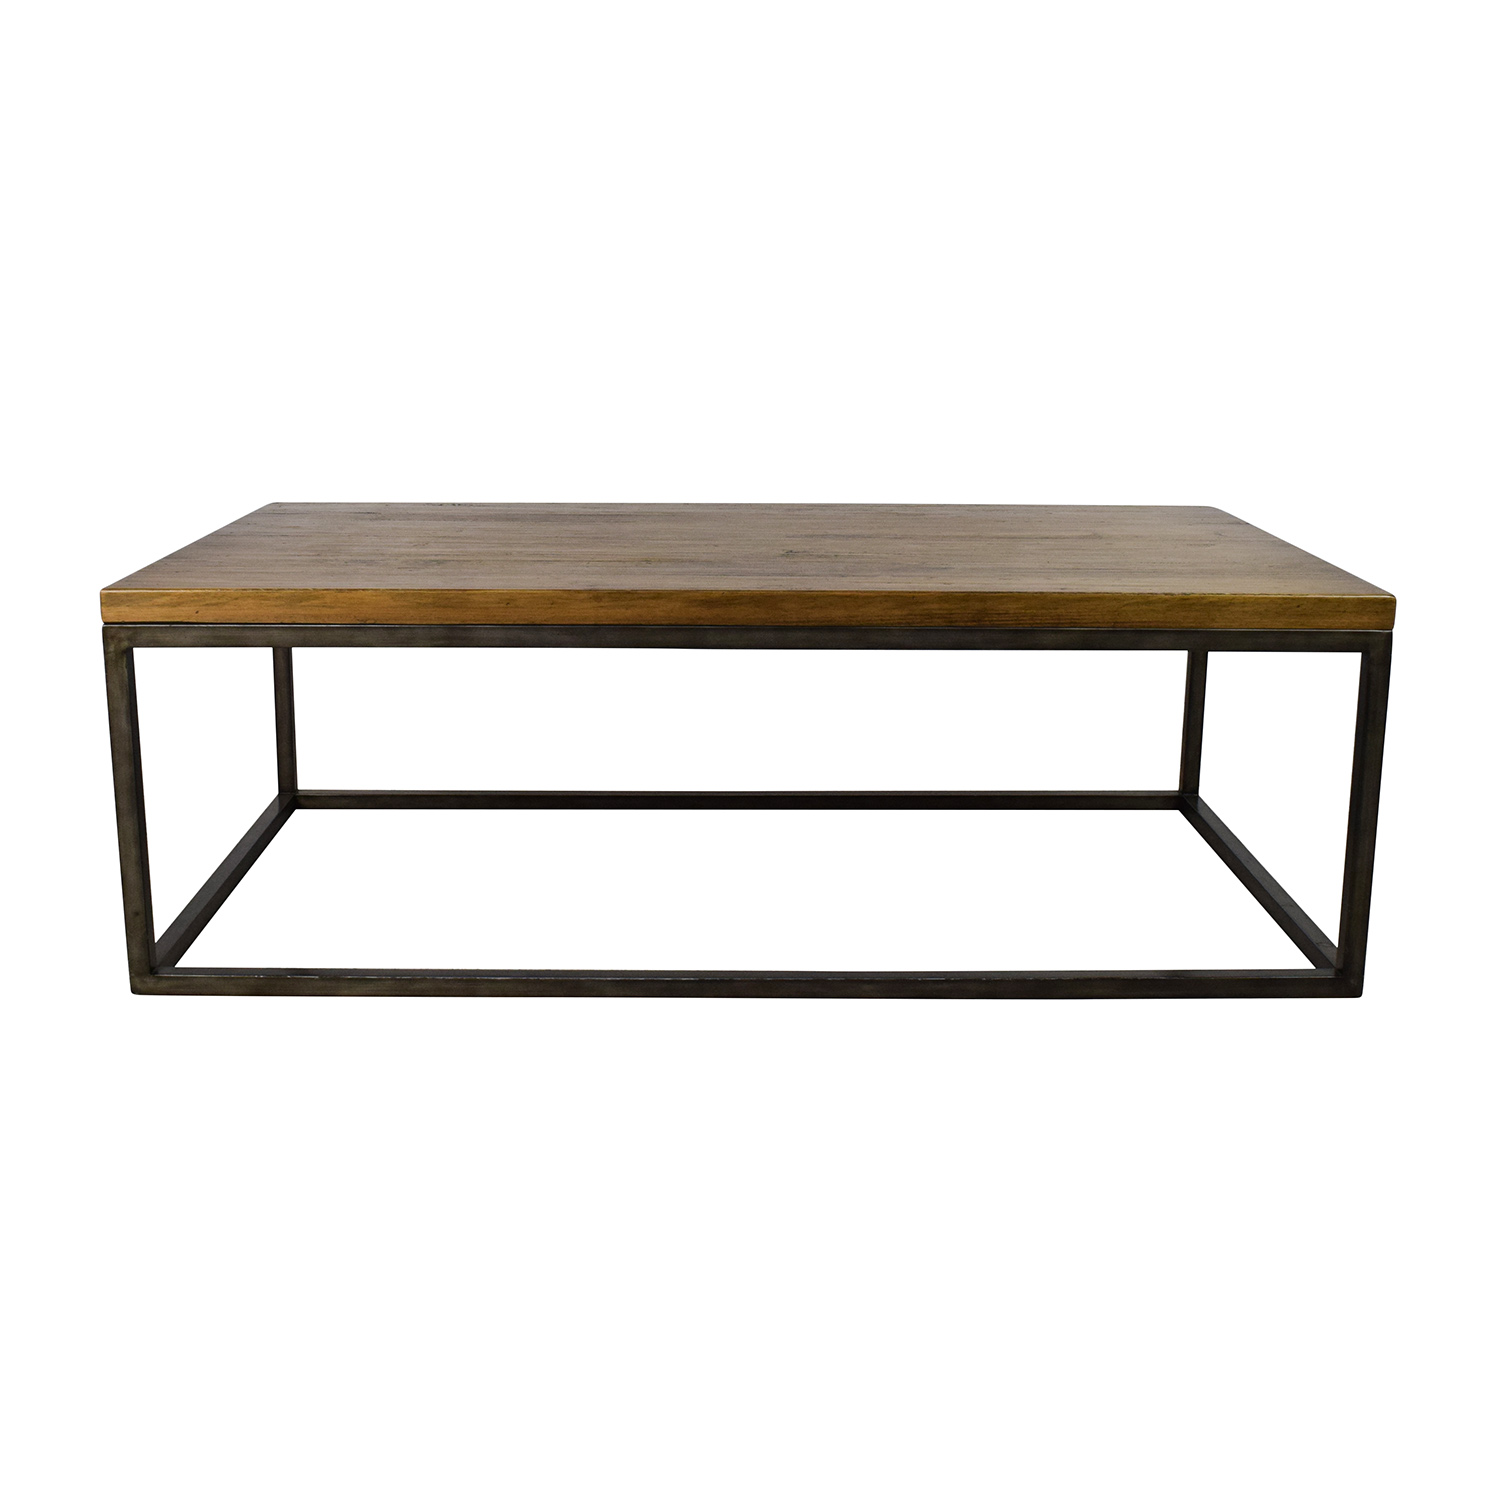 51 off west elm west elm box frame coffee table tables